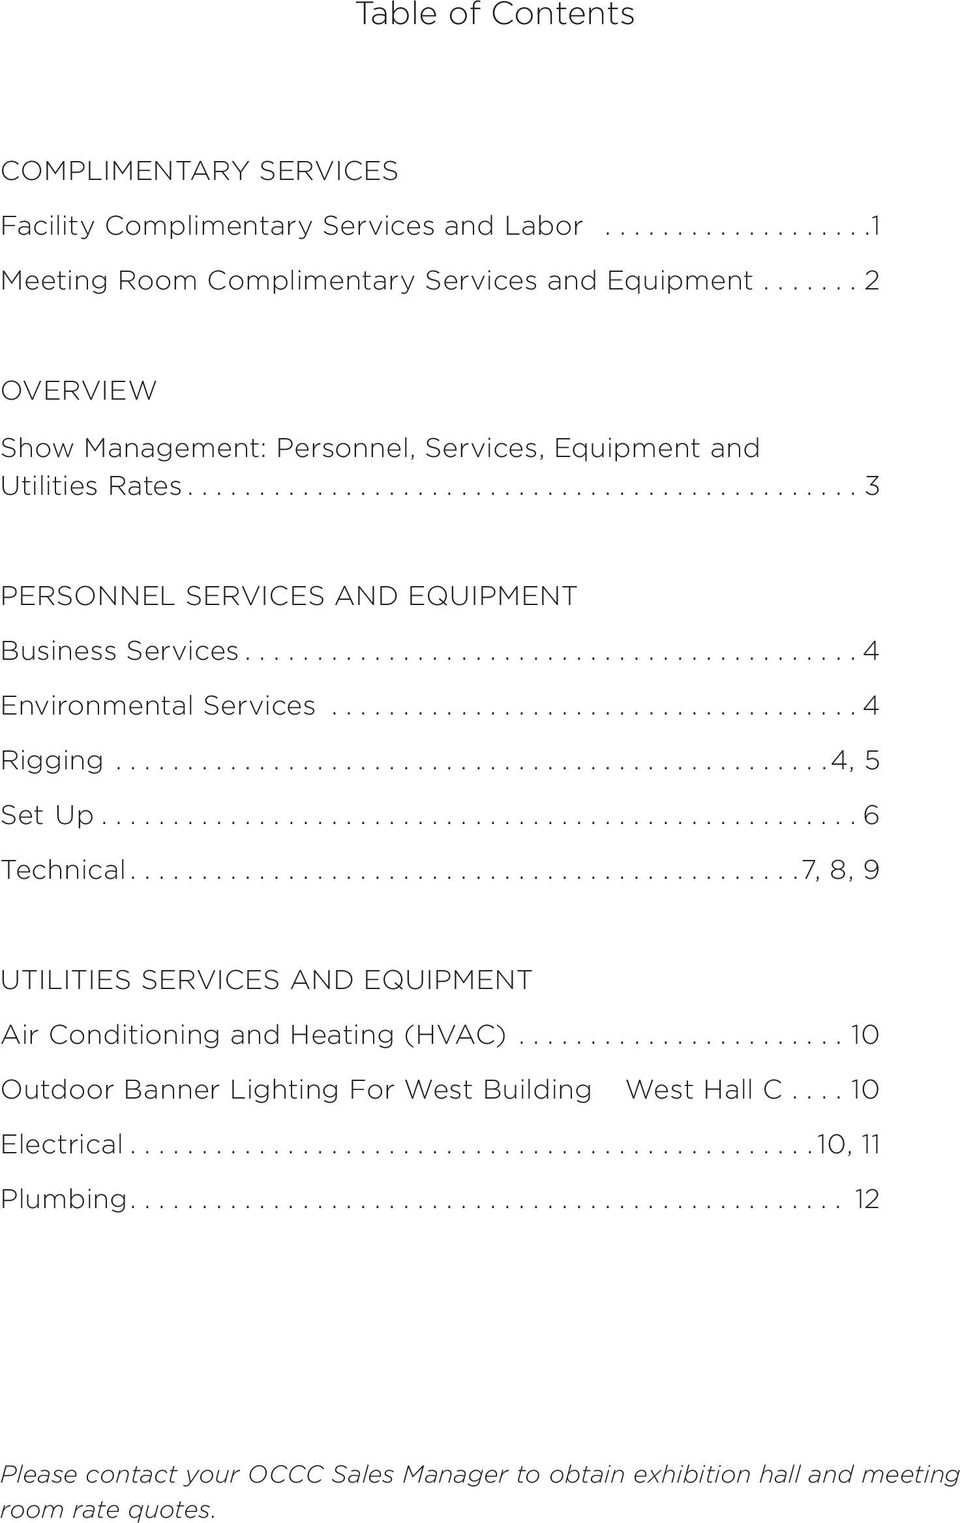 .. 4 Environmental Services... 4 Rigging... 4, 5 Set Up... 6 Technical... 7, 8, 9 UTILITIES SERVICES AND EQUIPMENT Air Conditioning and Heating (HVAC).